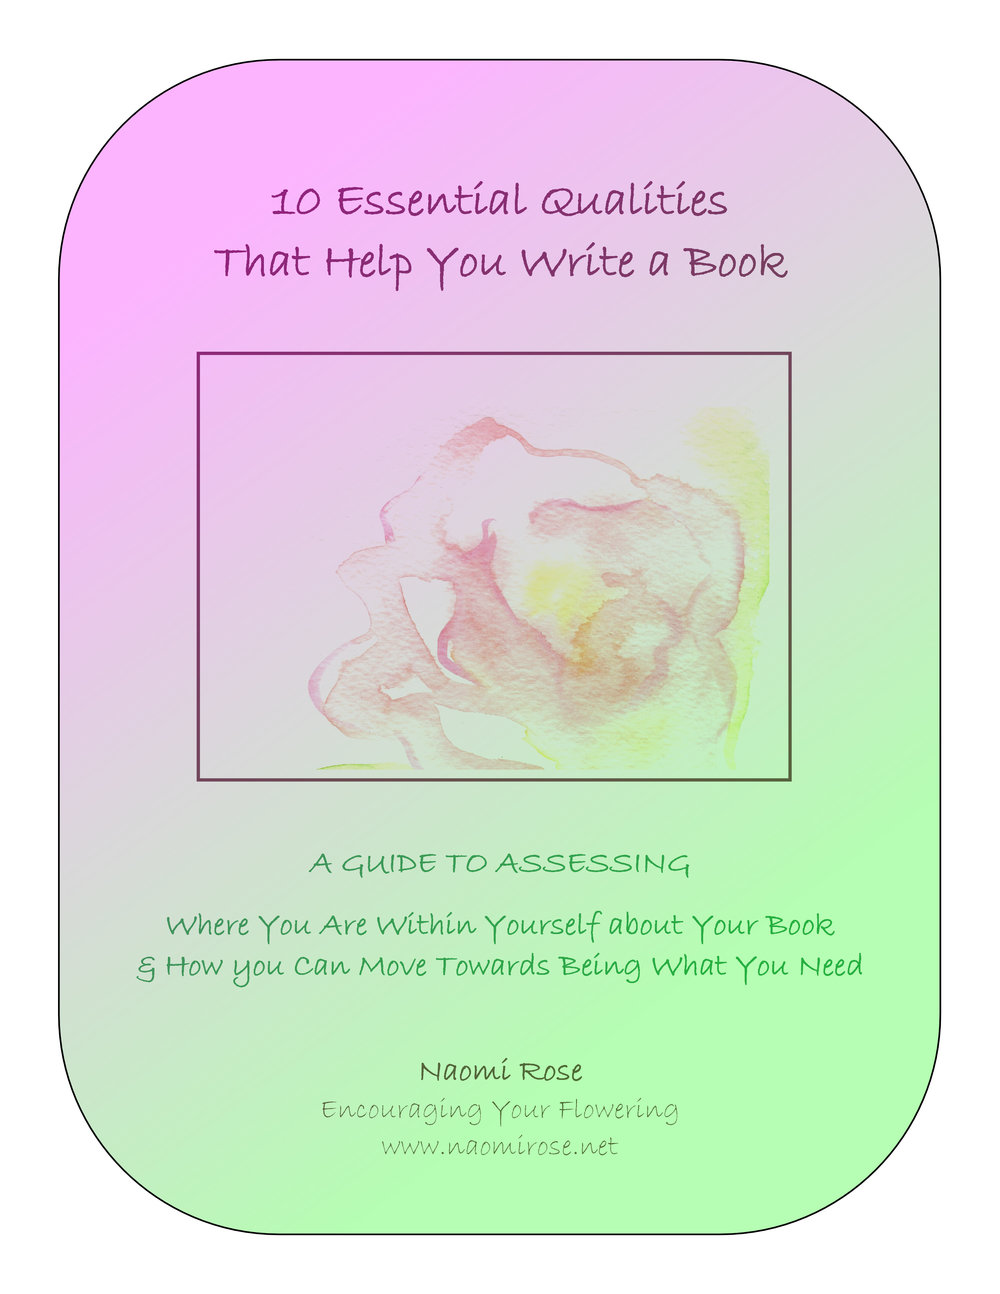 10 Essential Qualities That Help   You Write a Book (Ya Batin cover image).JPG